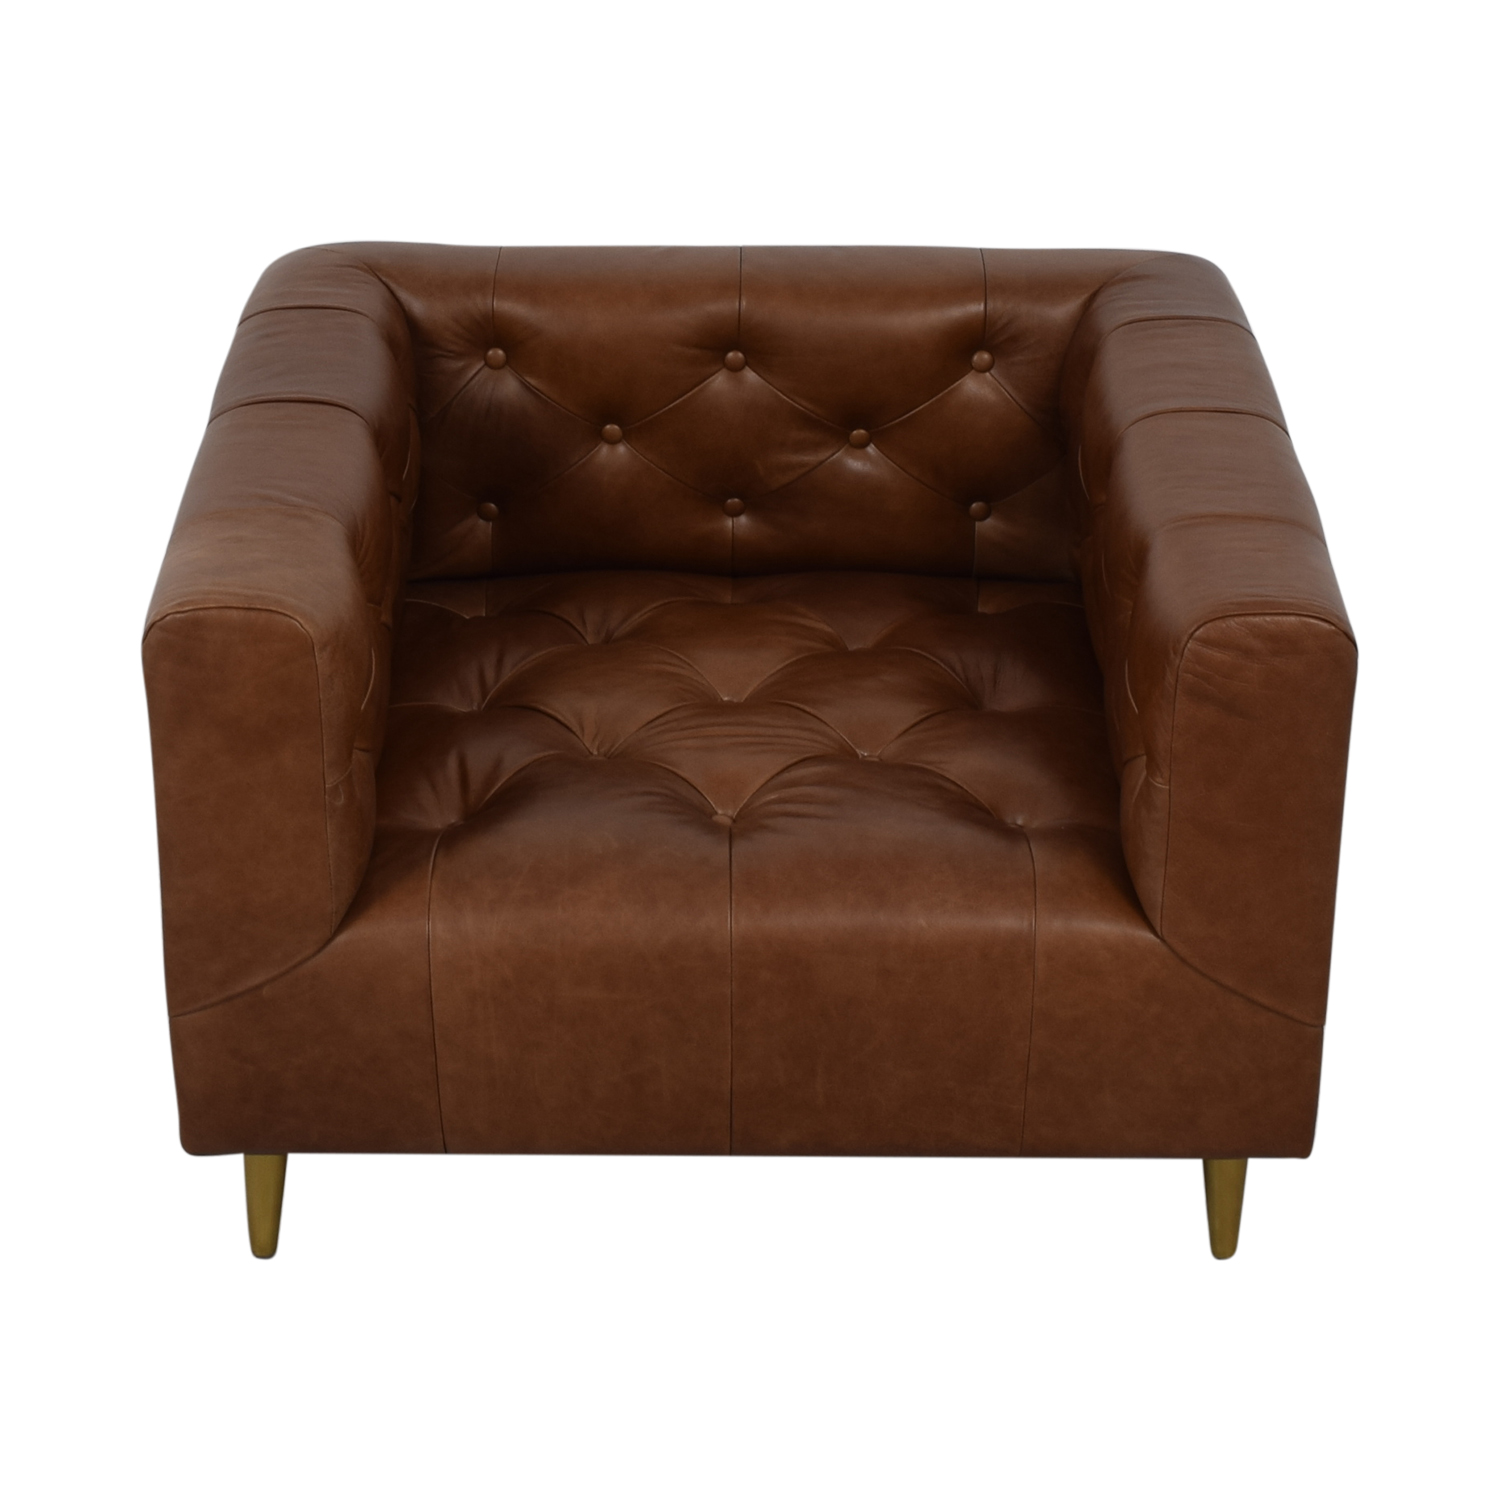 shop Ms. Chesterfield Cognac Tufted Accent Chair Interior Define Chairs